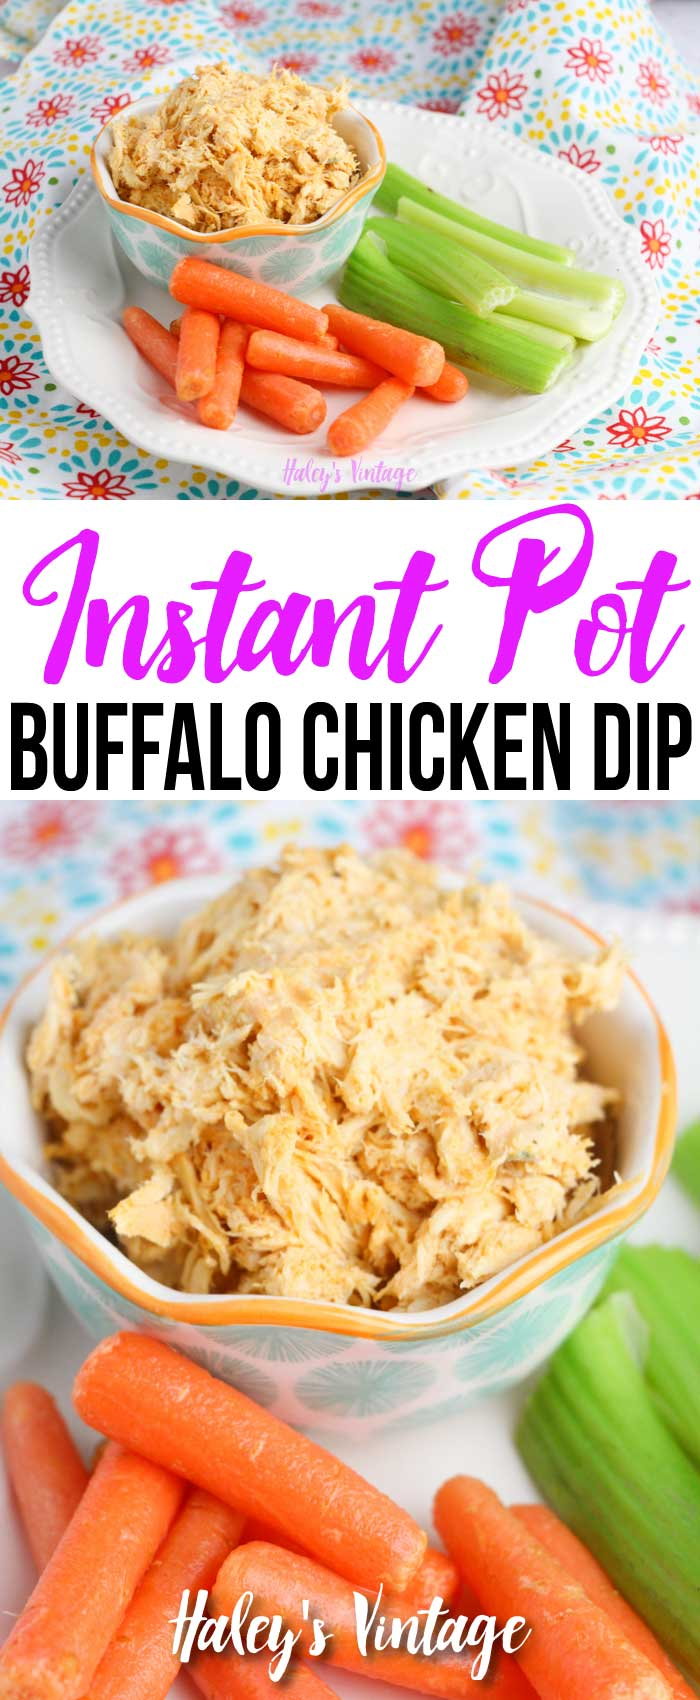 Are you looking for a great game day recipe? Why not try my Instant Pot Buffalo Chicken Dip! This delicious recipe will please all the fans in your house. #instantpot #dip